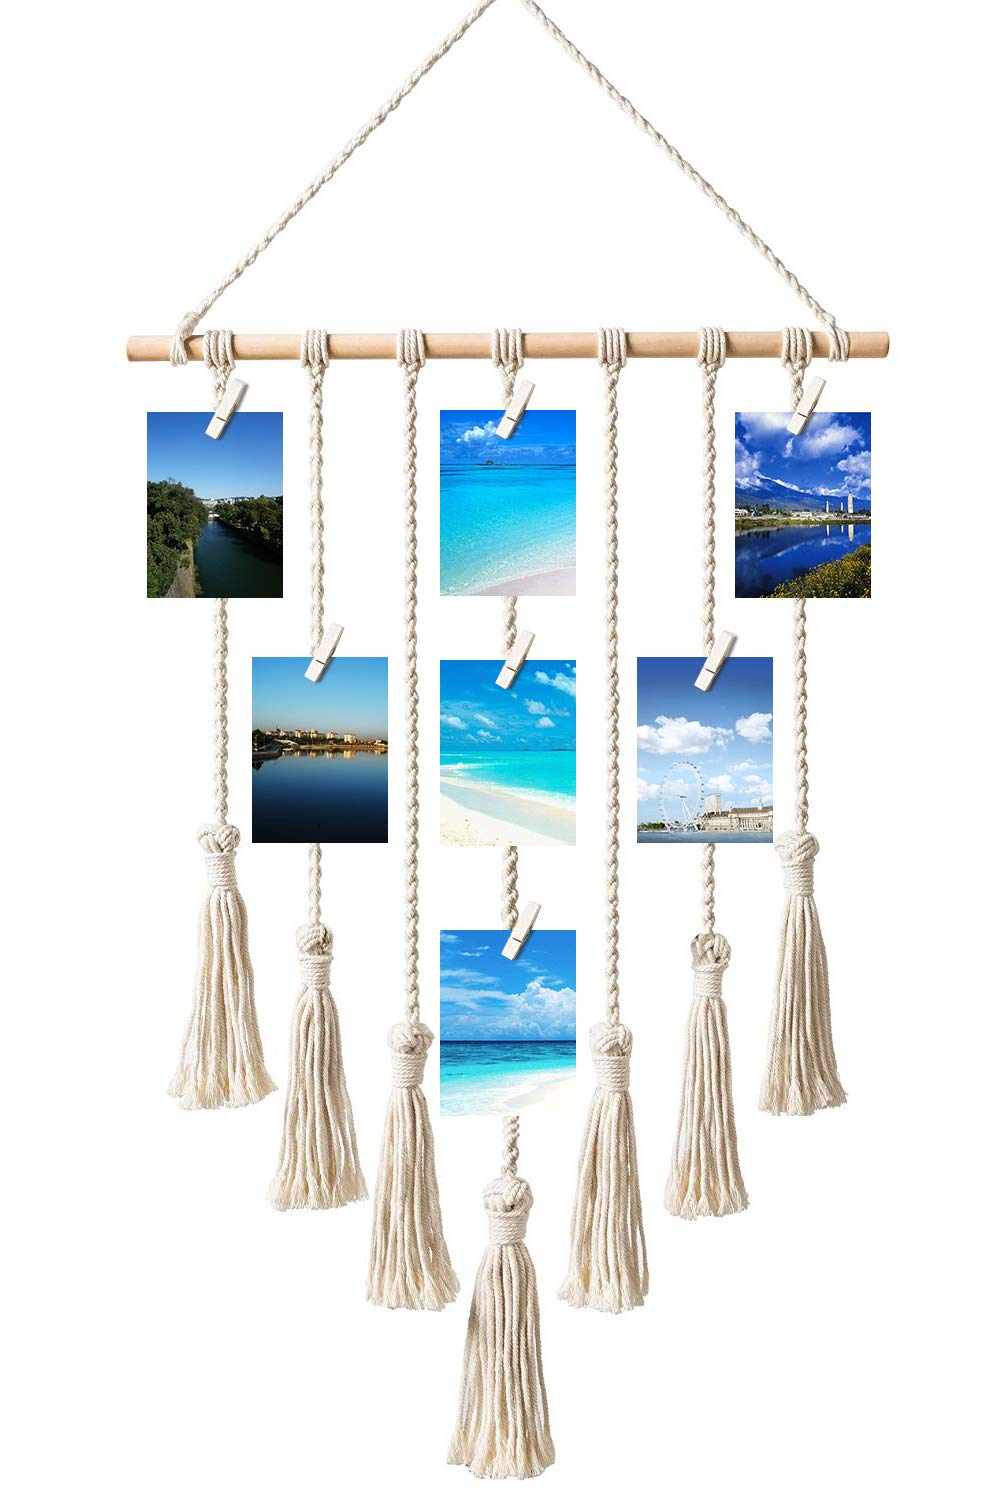 Toniya Hanging Photo Display Pictures Organizer Macrame Wall Bohemian Home Decor,with 30 Wood Clips - With this macrame wall hanging you'll instantly add a bohemian vibe to your room and it will really warm up a space.It is great for a bedroom, living area, workspace or anywhere where you'd like to bring some texture and interest to Flexible and Versatile- Change your photos whenever you want, and also suitable for art works or crafts, prints, cards etc. Materials: cotton cord and wood dowel with 30 removable wood clips. Gorgeous, durable and eco friendly decor, suitable for indoor use. - living-room-decor, living-room, home-decor - 61YYCNXnkSL -